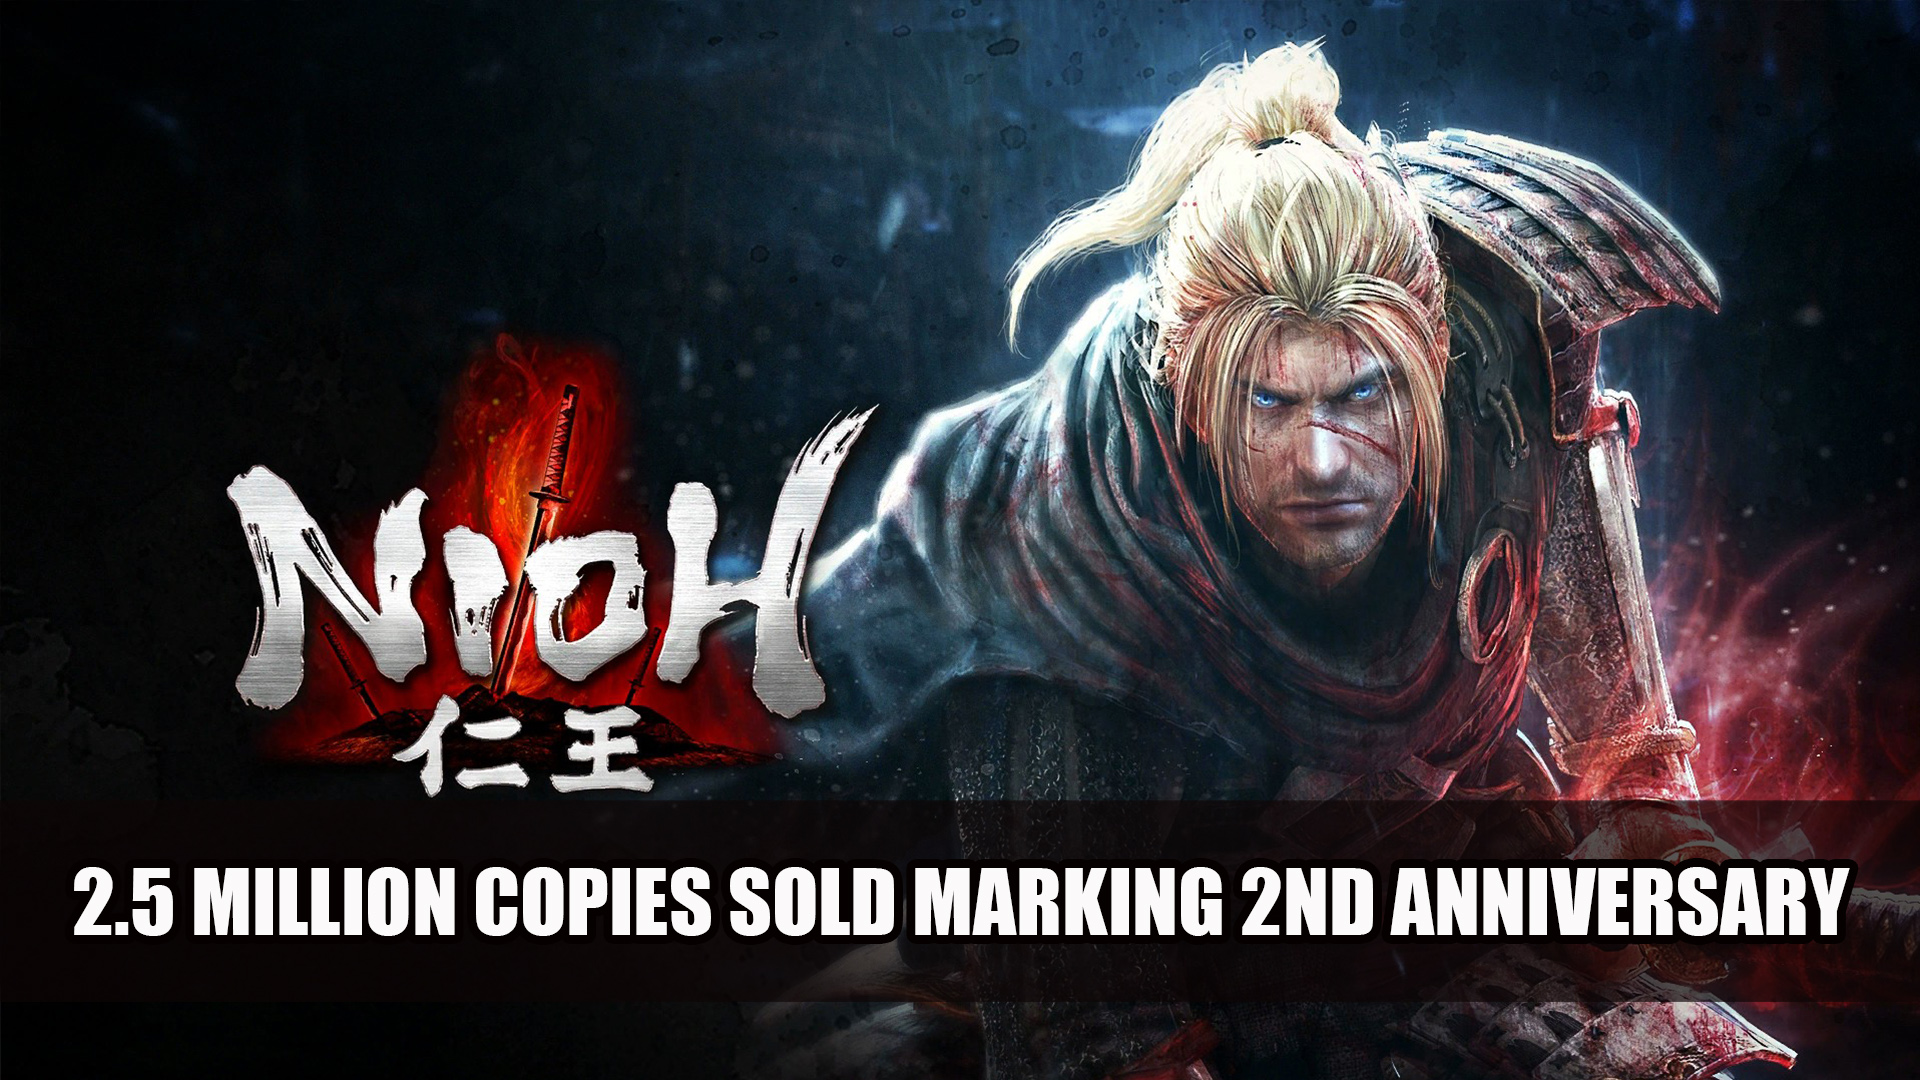 Dark Souls Ii Final Review The Trouble With Sequels: Nioh Reaches Over 2.5 Million Copies Sold Worldwide